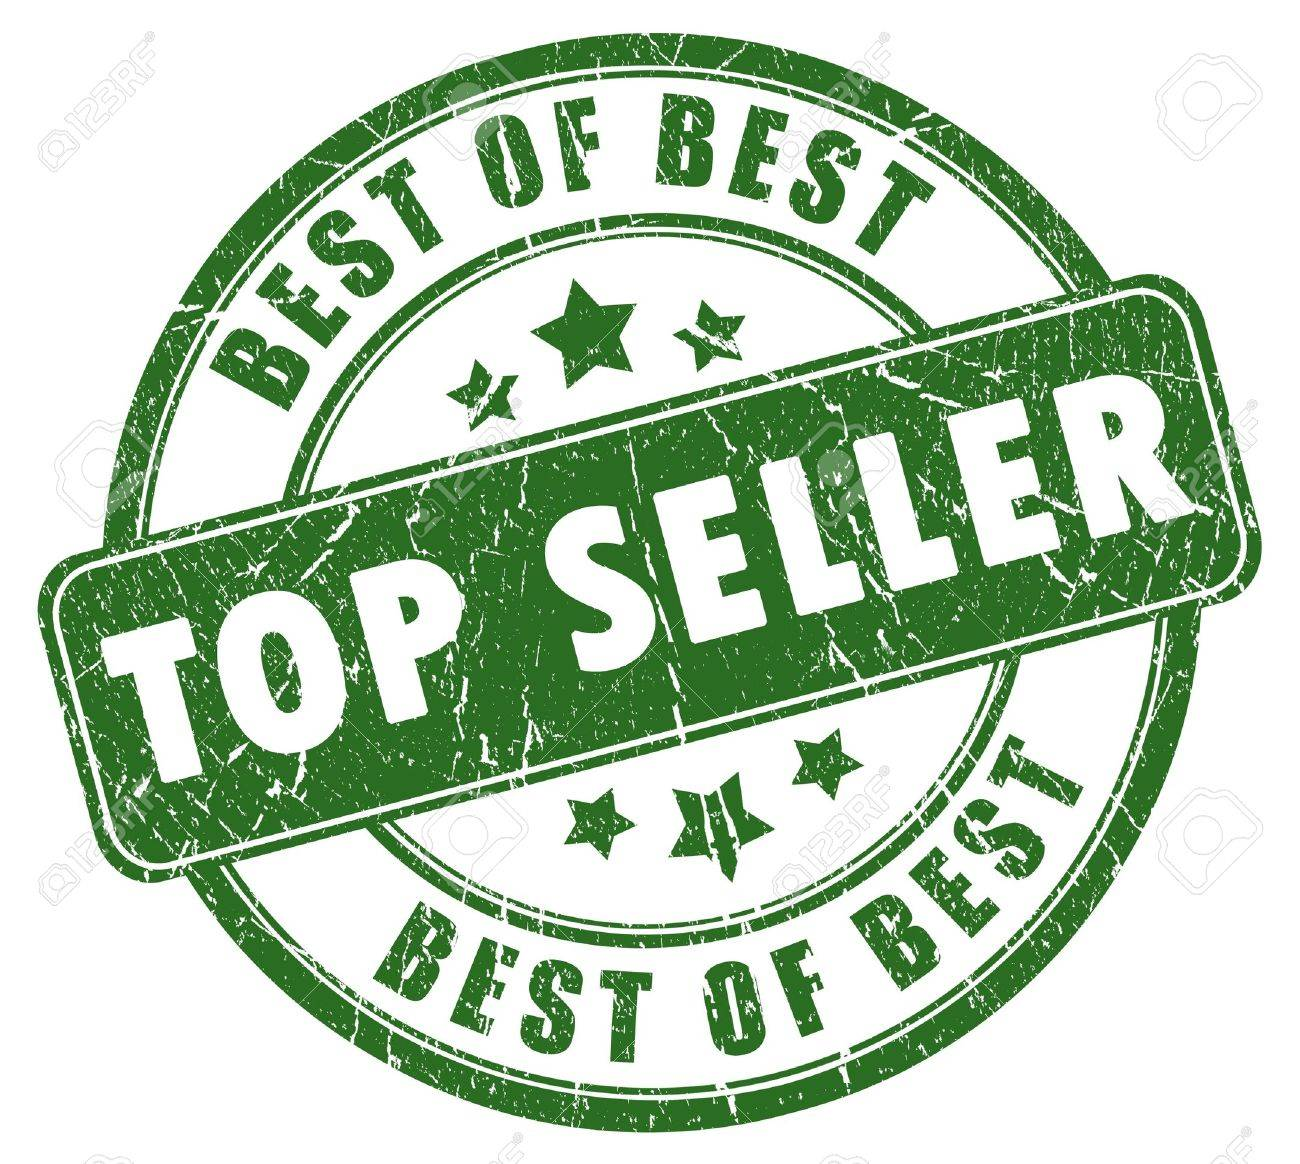 Top seller stamp Stock Photo - 8157760